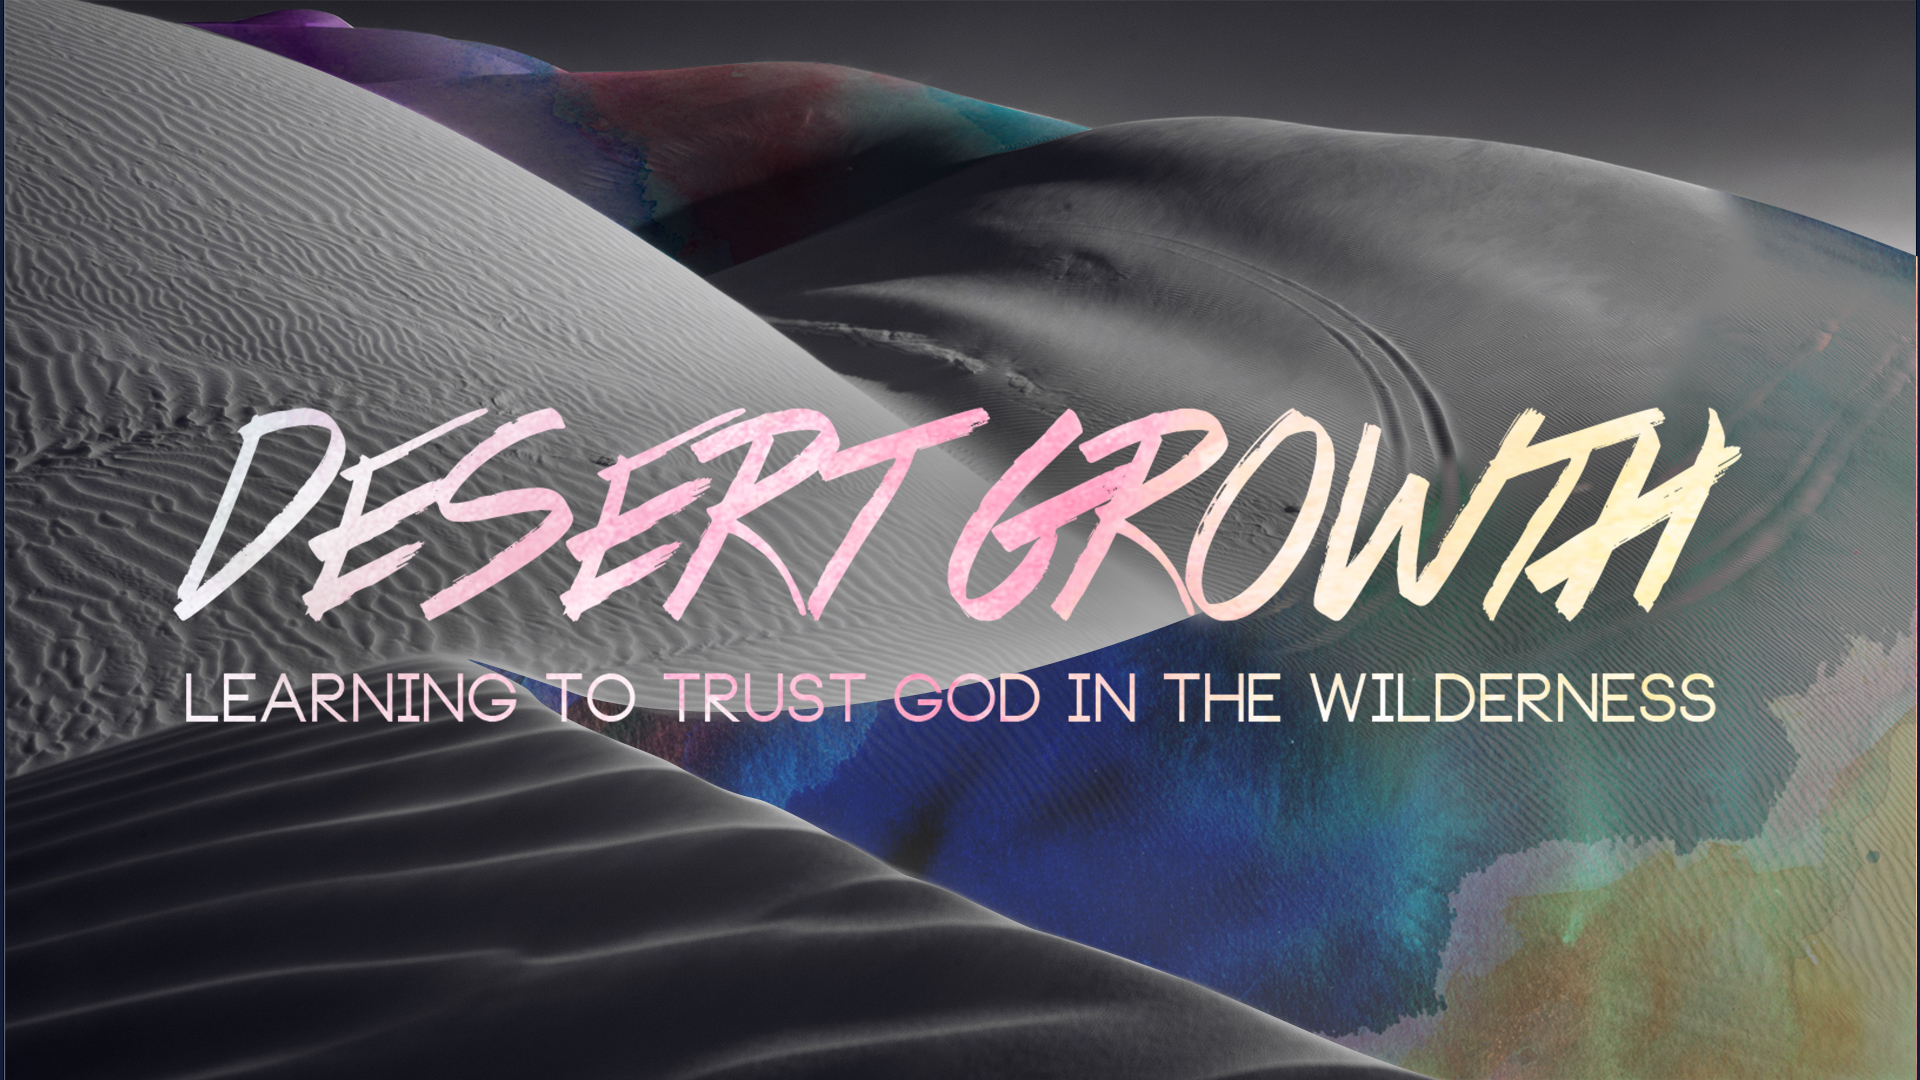 sermon series graphic for the desert growth series